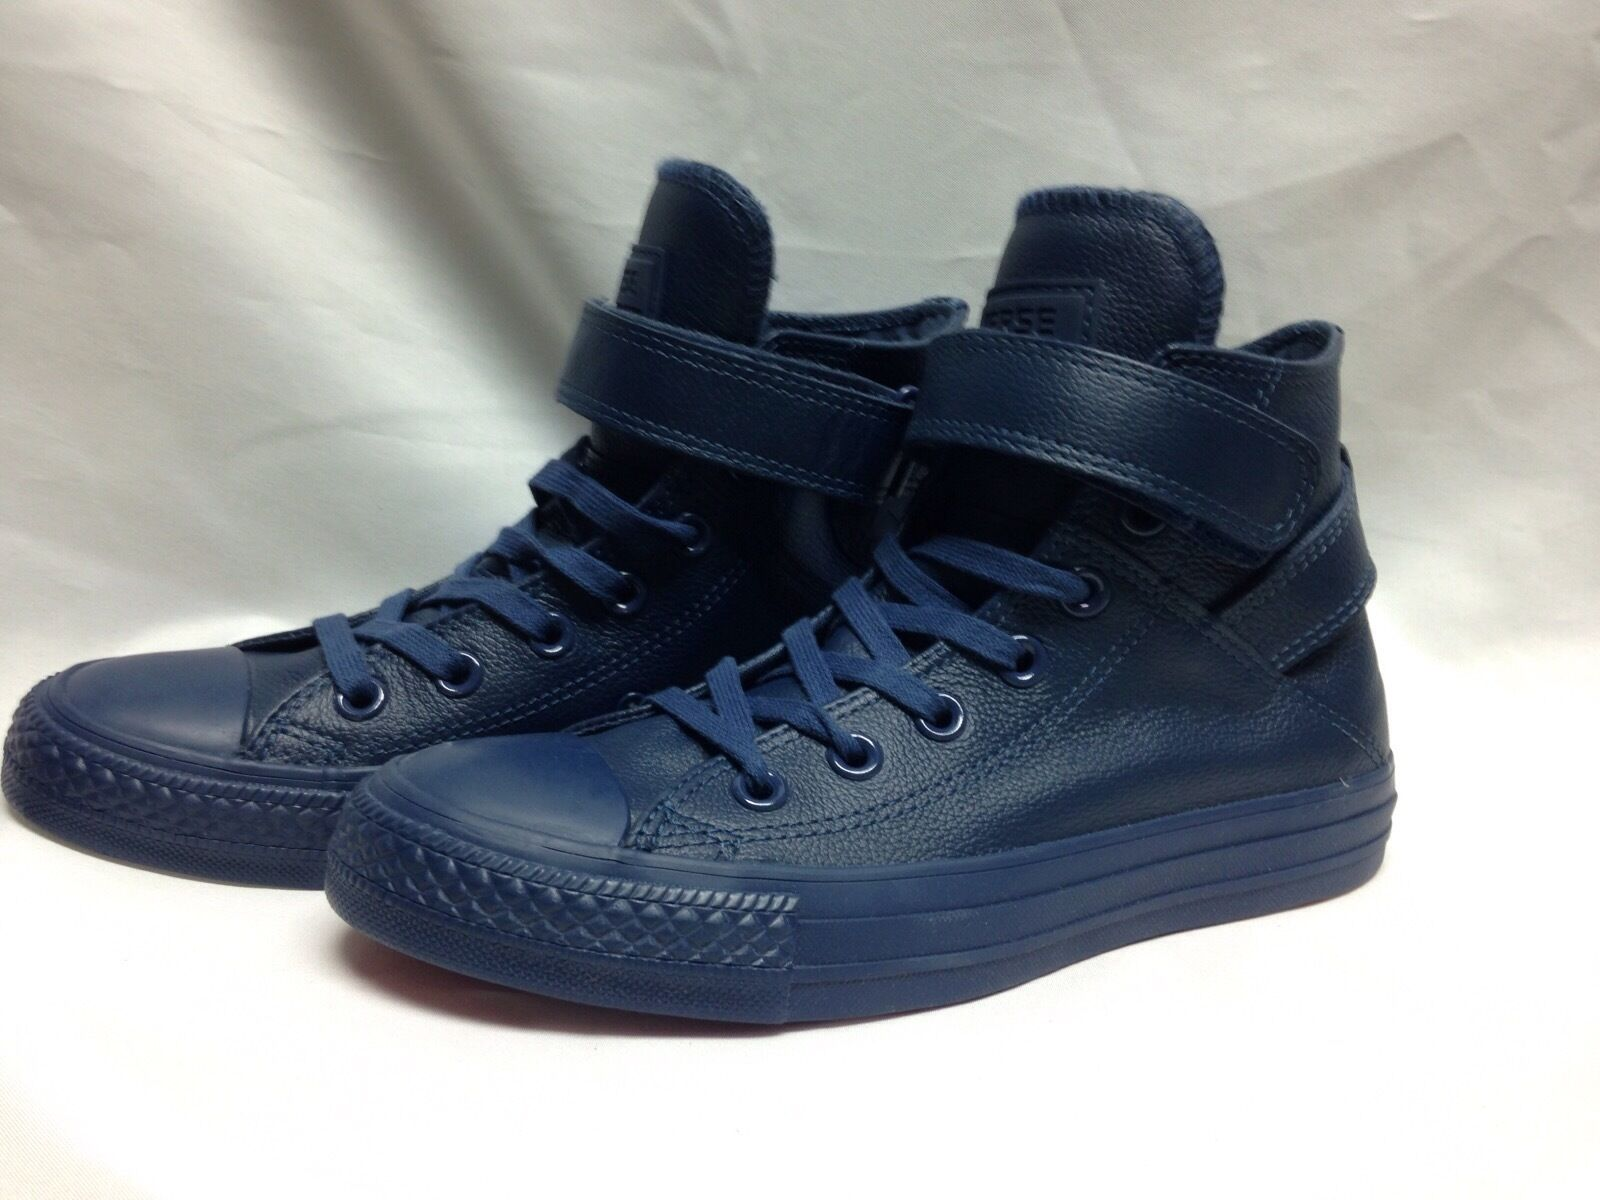 Converse CTAS BREA Hi Top Lace Up Sneaker 551583C Navy  NEU w/ Box